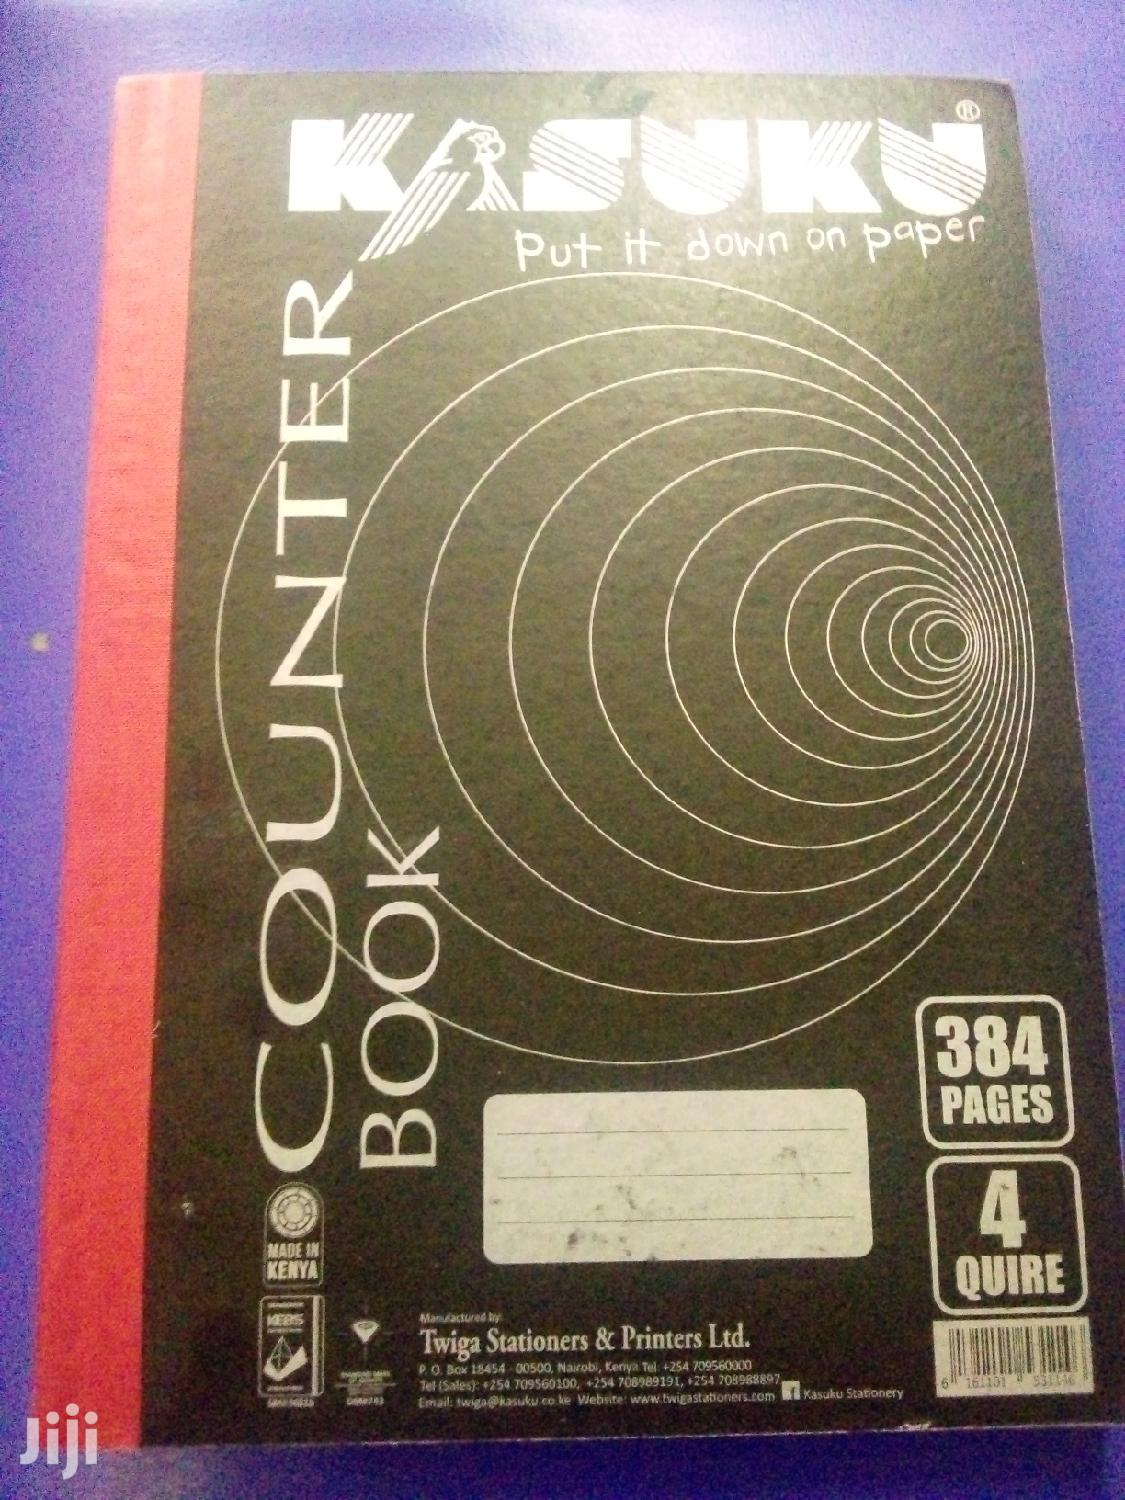 Counter Books Or Quire Books Hard Cover | Books & Games for sale in Nairobi Central, Nairobi, Kenya